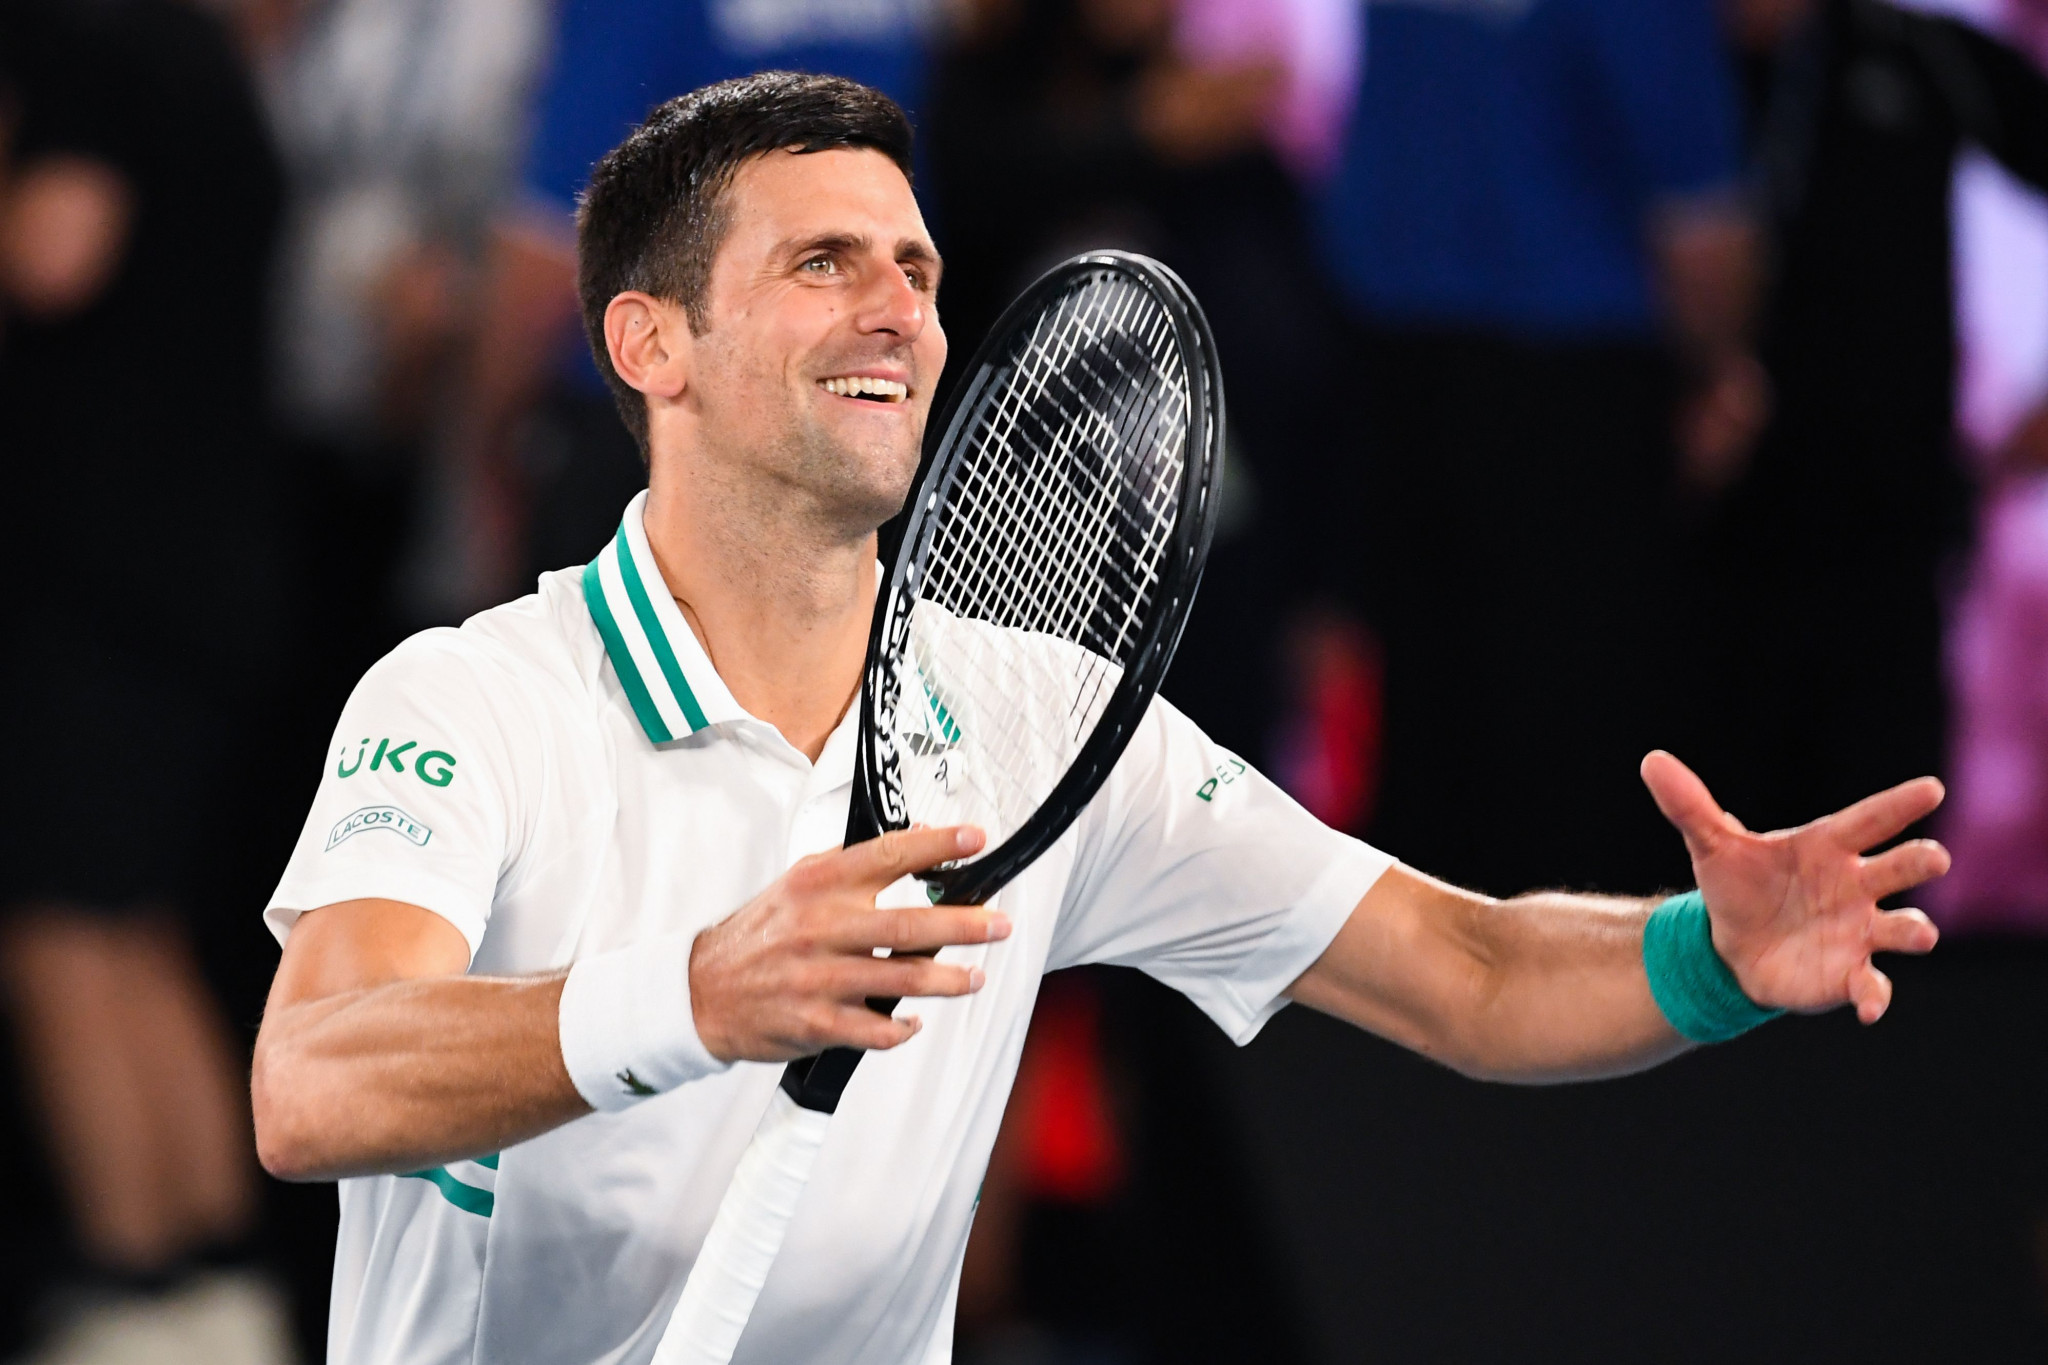 Djokovic withdraws from Miami Open due to COVID-19 restrictions